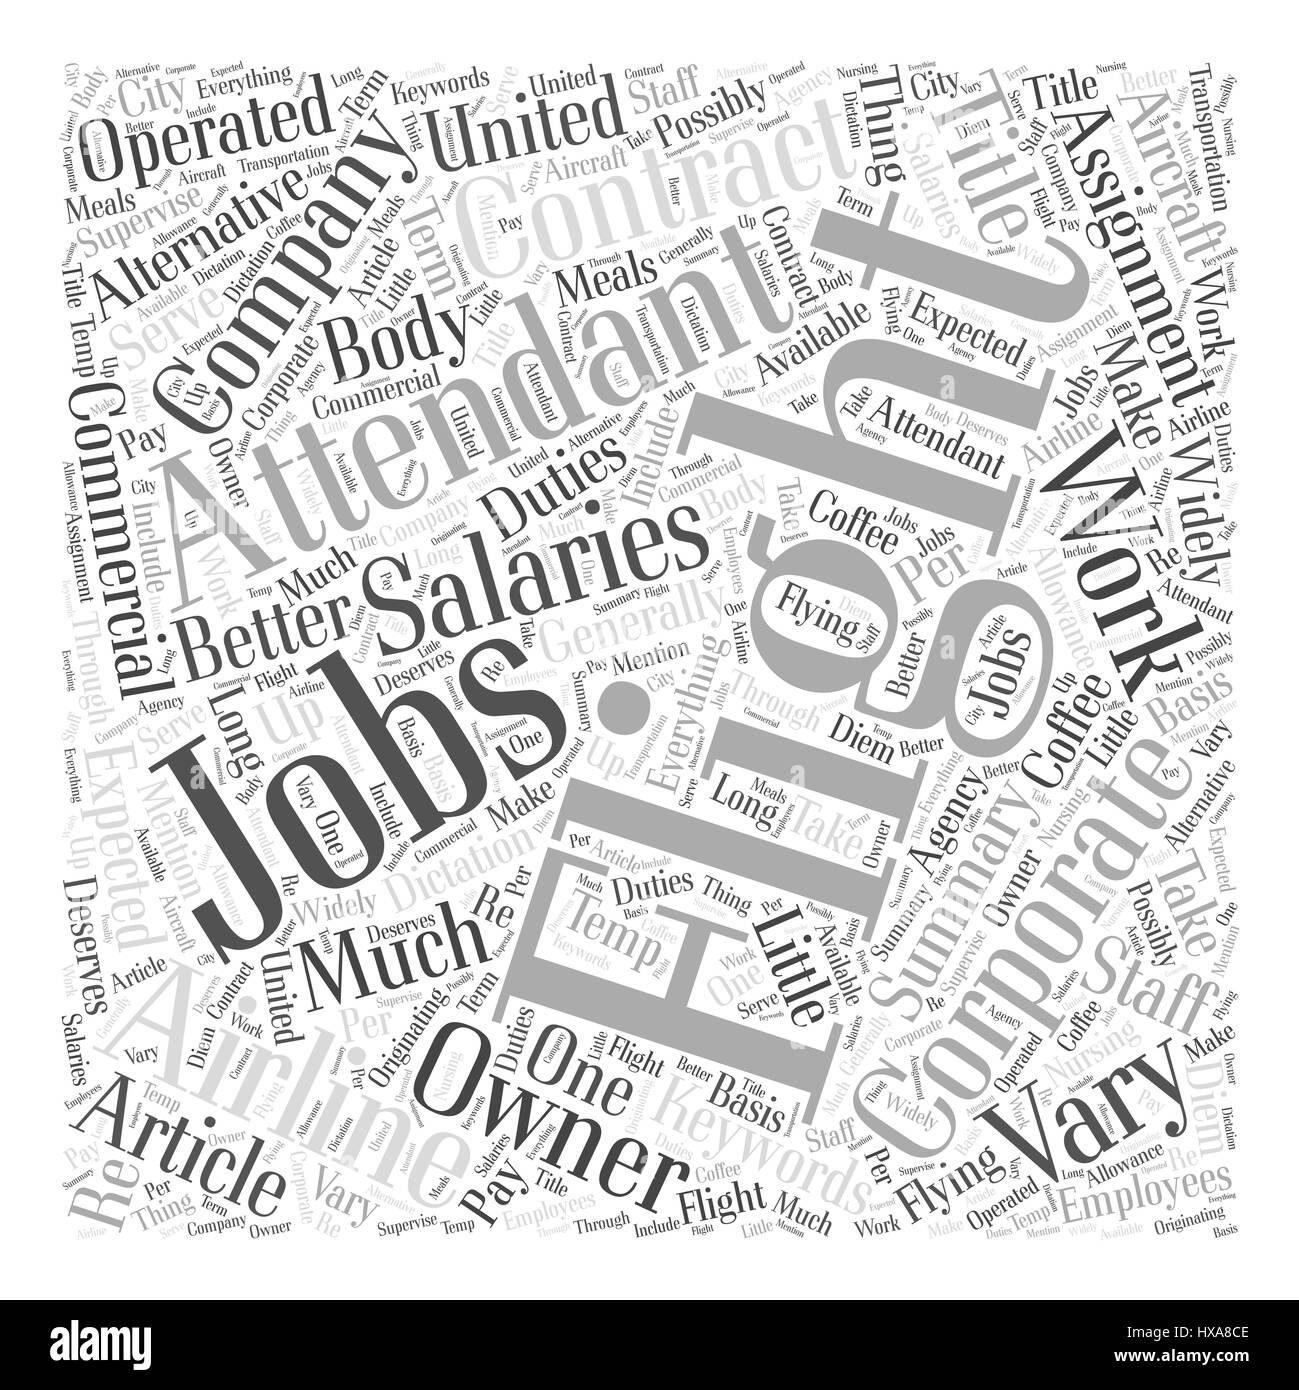 Corporate Flight Attendant Jobs An Alternative To Commercial Airlines Word Cloud Concept - Stock Image